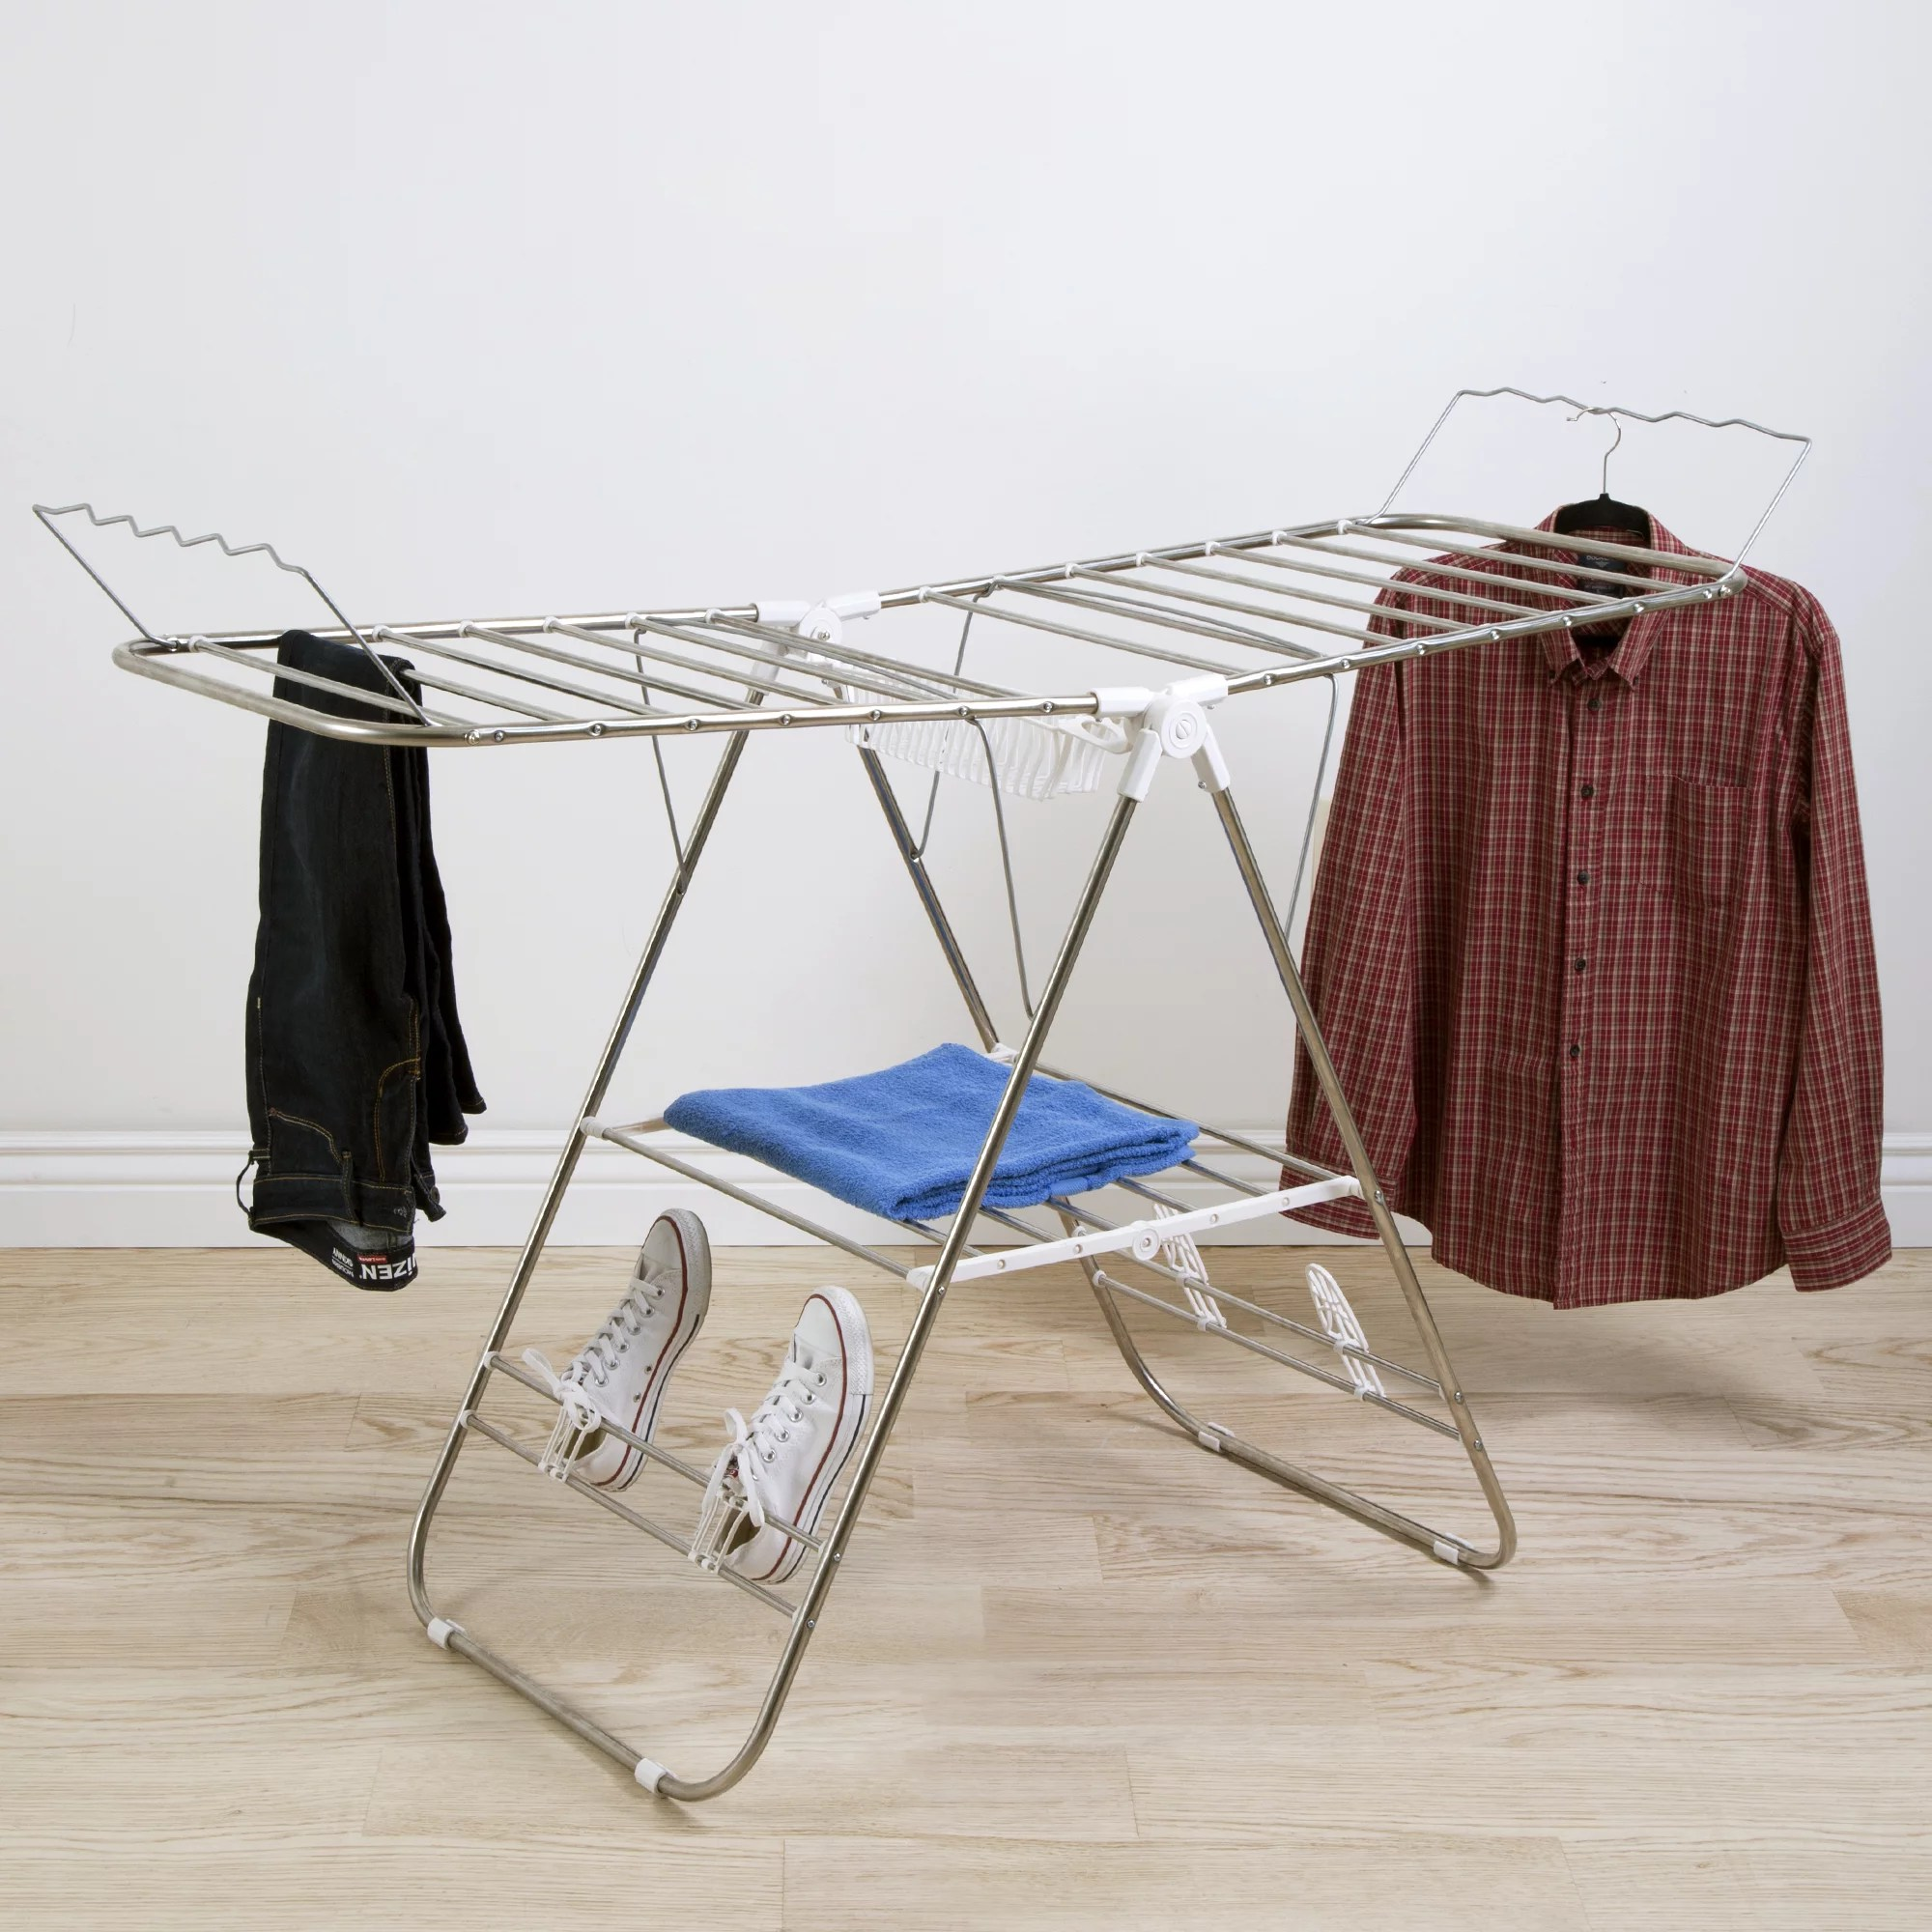 heavy duty laundry drying rack stainless steel clothing shelf for indoor and outdoor use best used for shirts pants towels shoes by everyday home